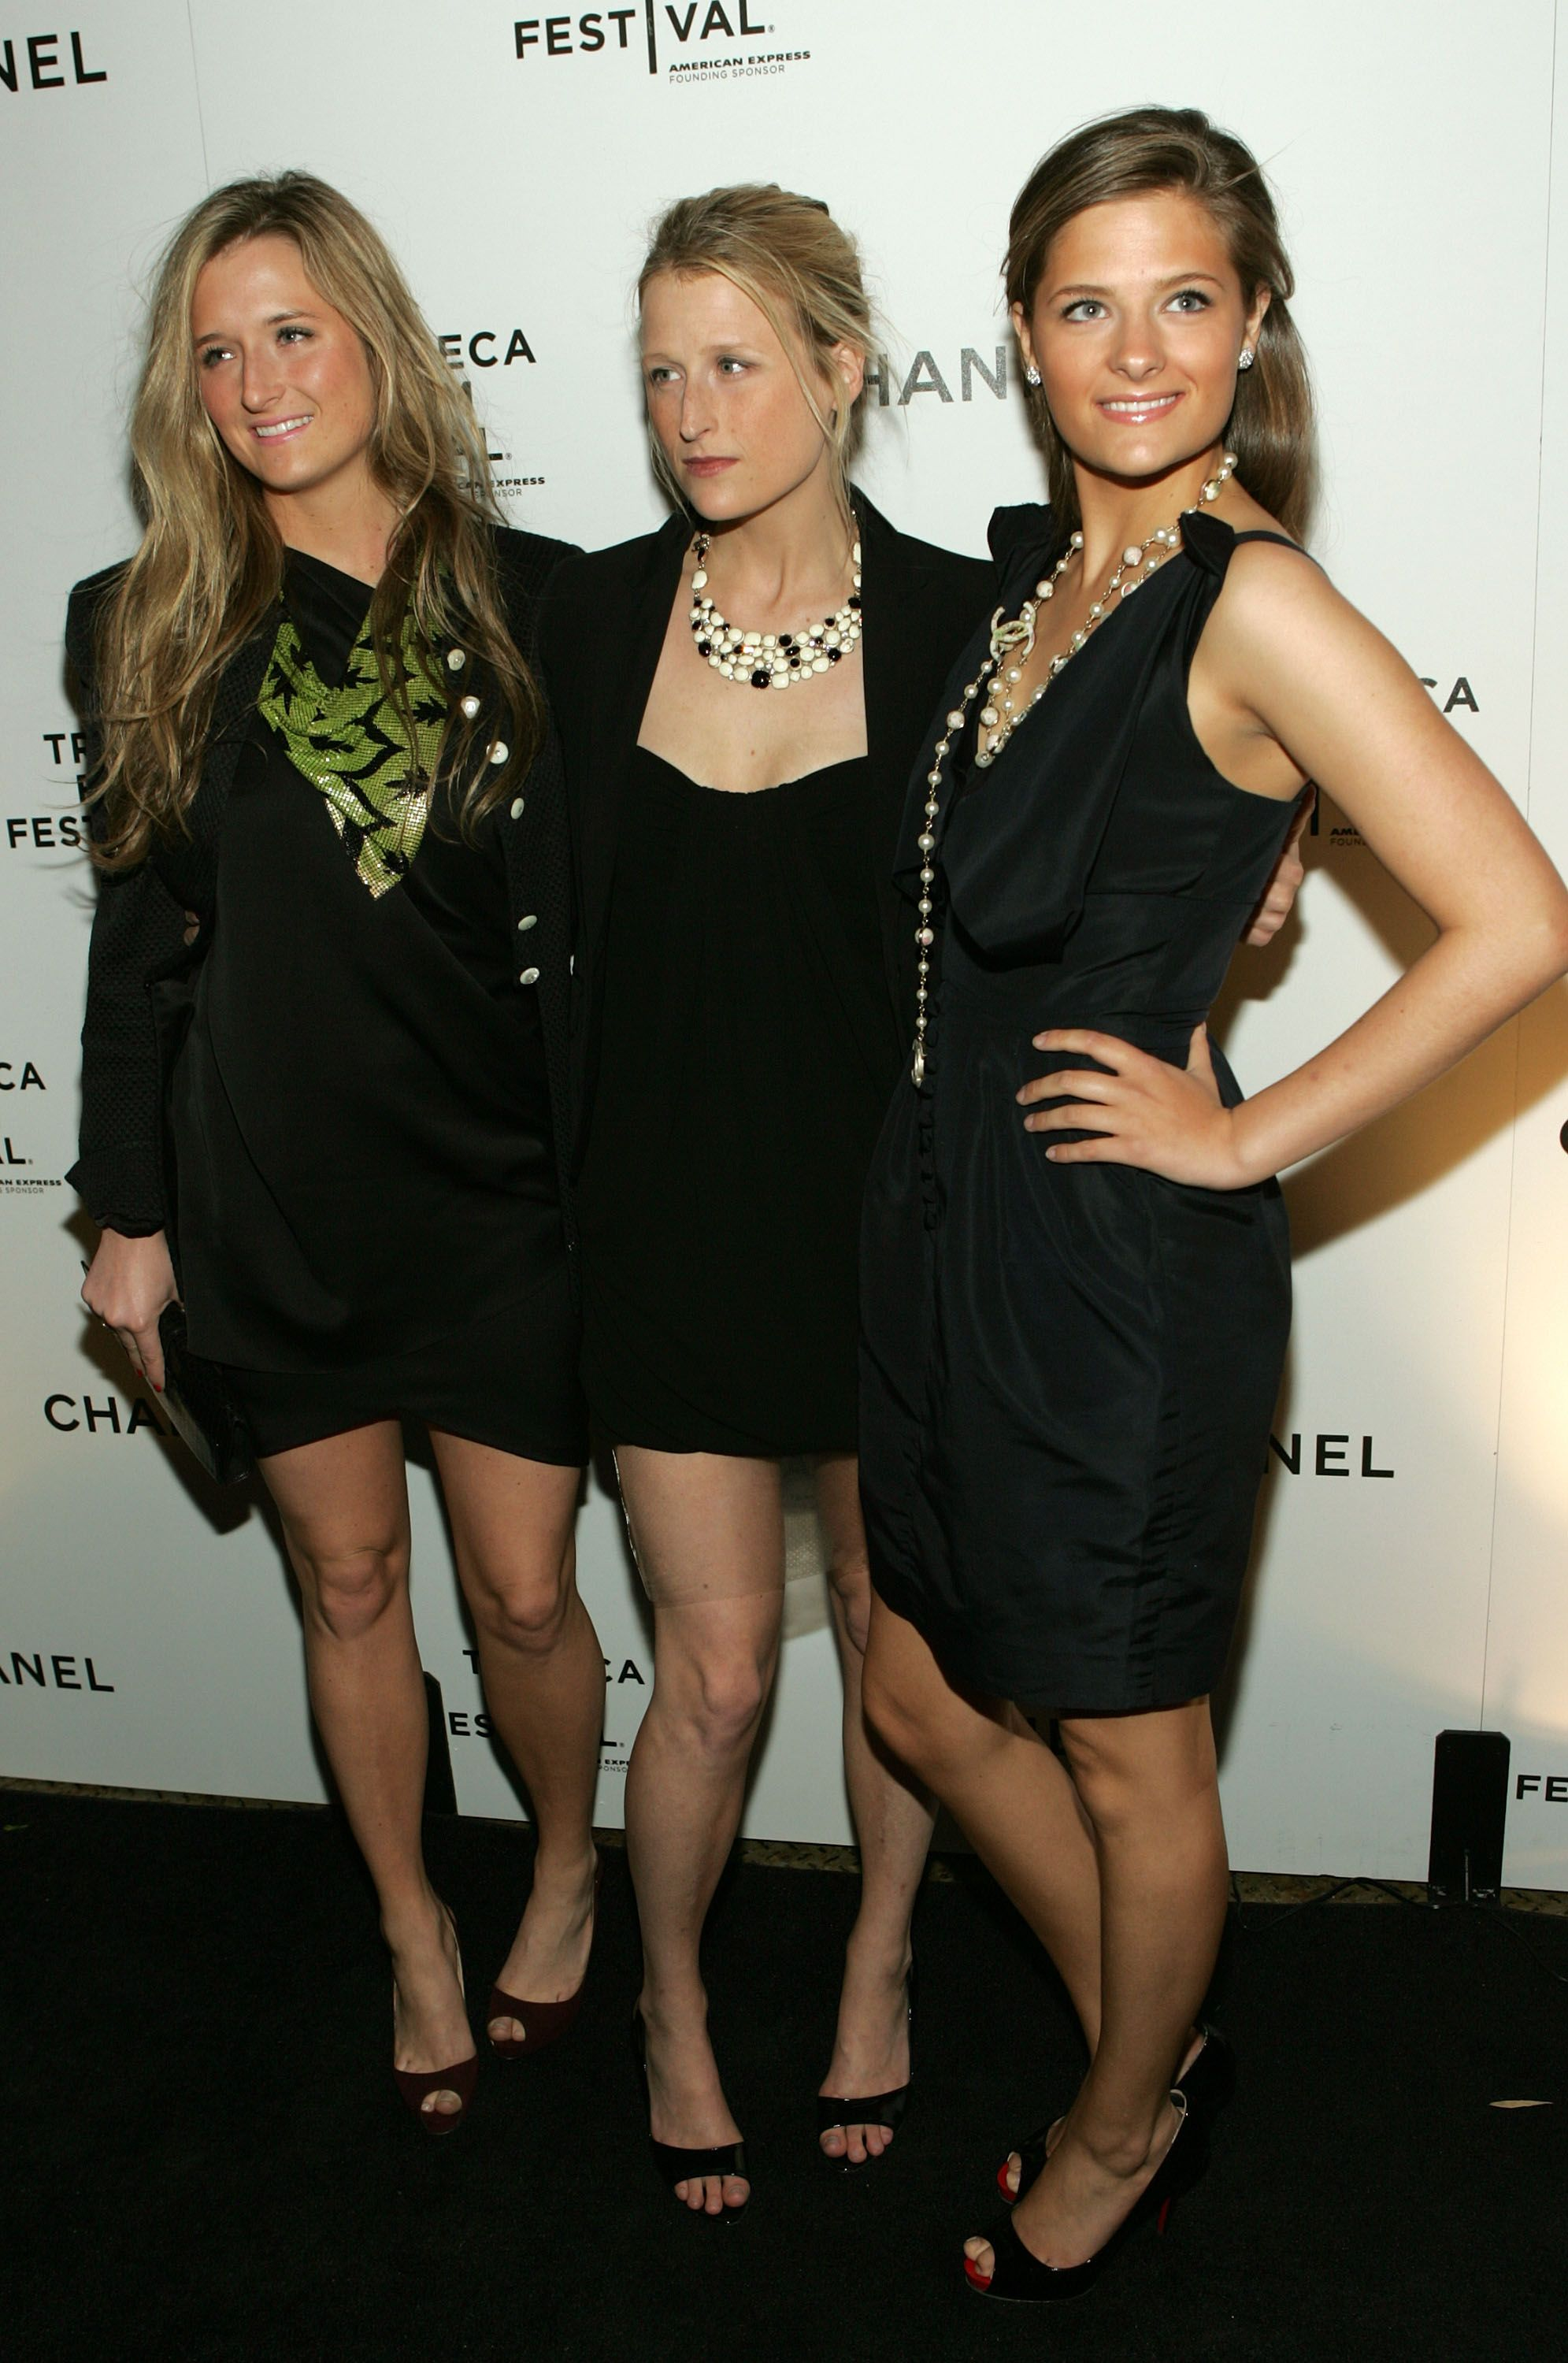 Gracie Gummer, Mamie Gummer and Louisa Jacobson at the Tribeca Film Festival Artists' Dinner in 2009 in New York City | Source: Getty Images